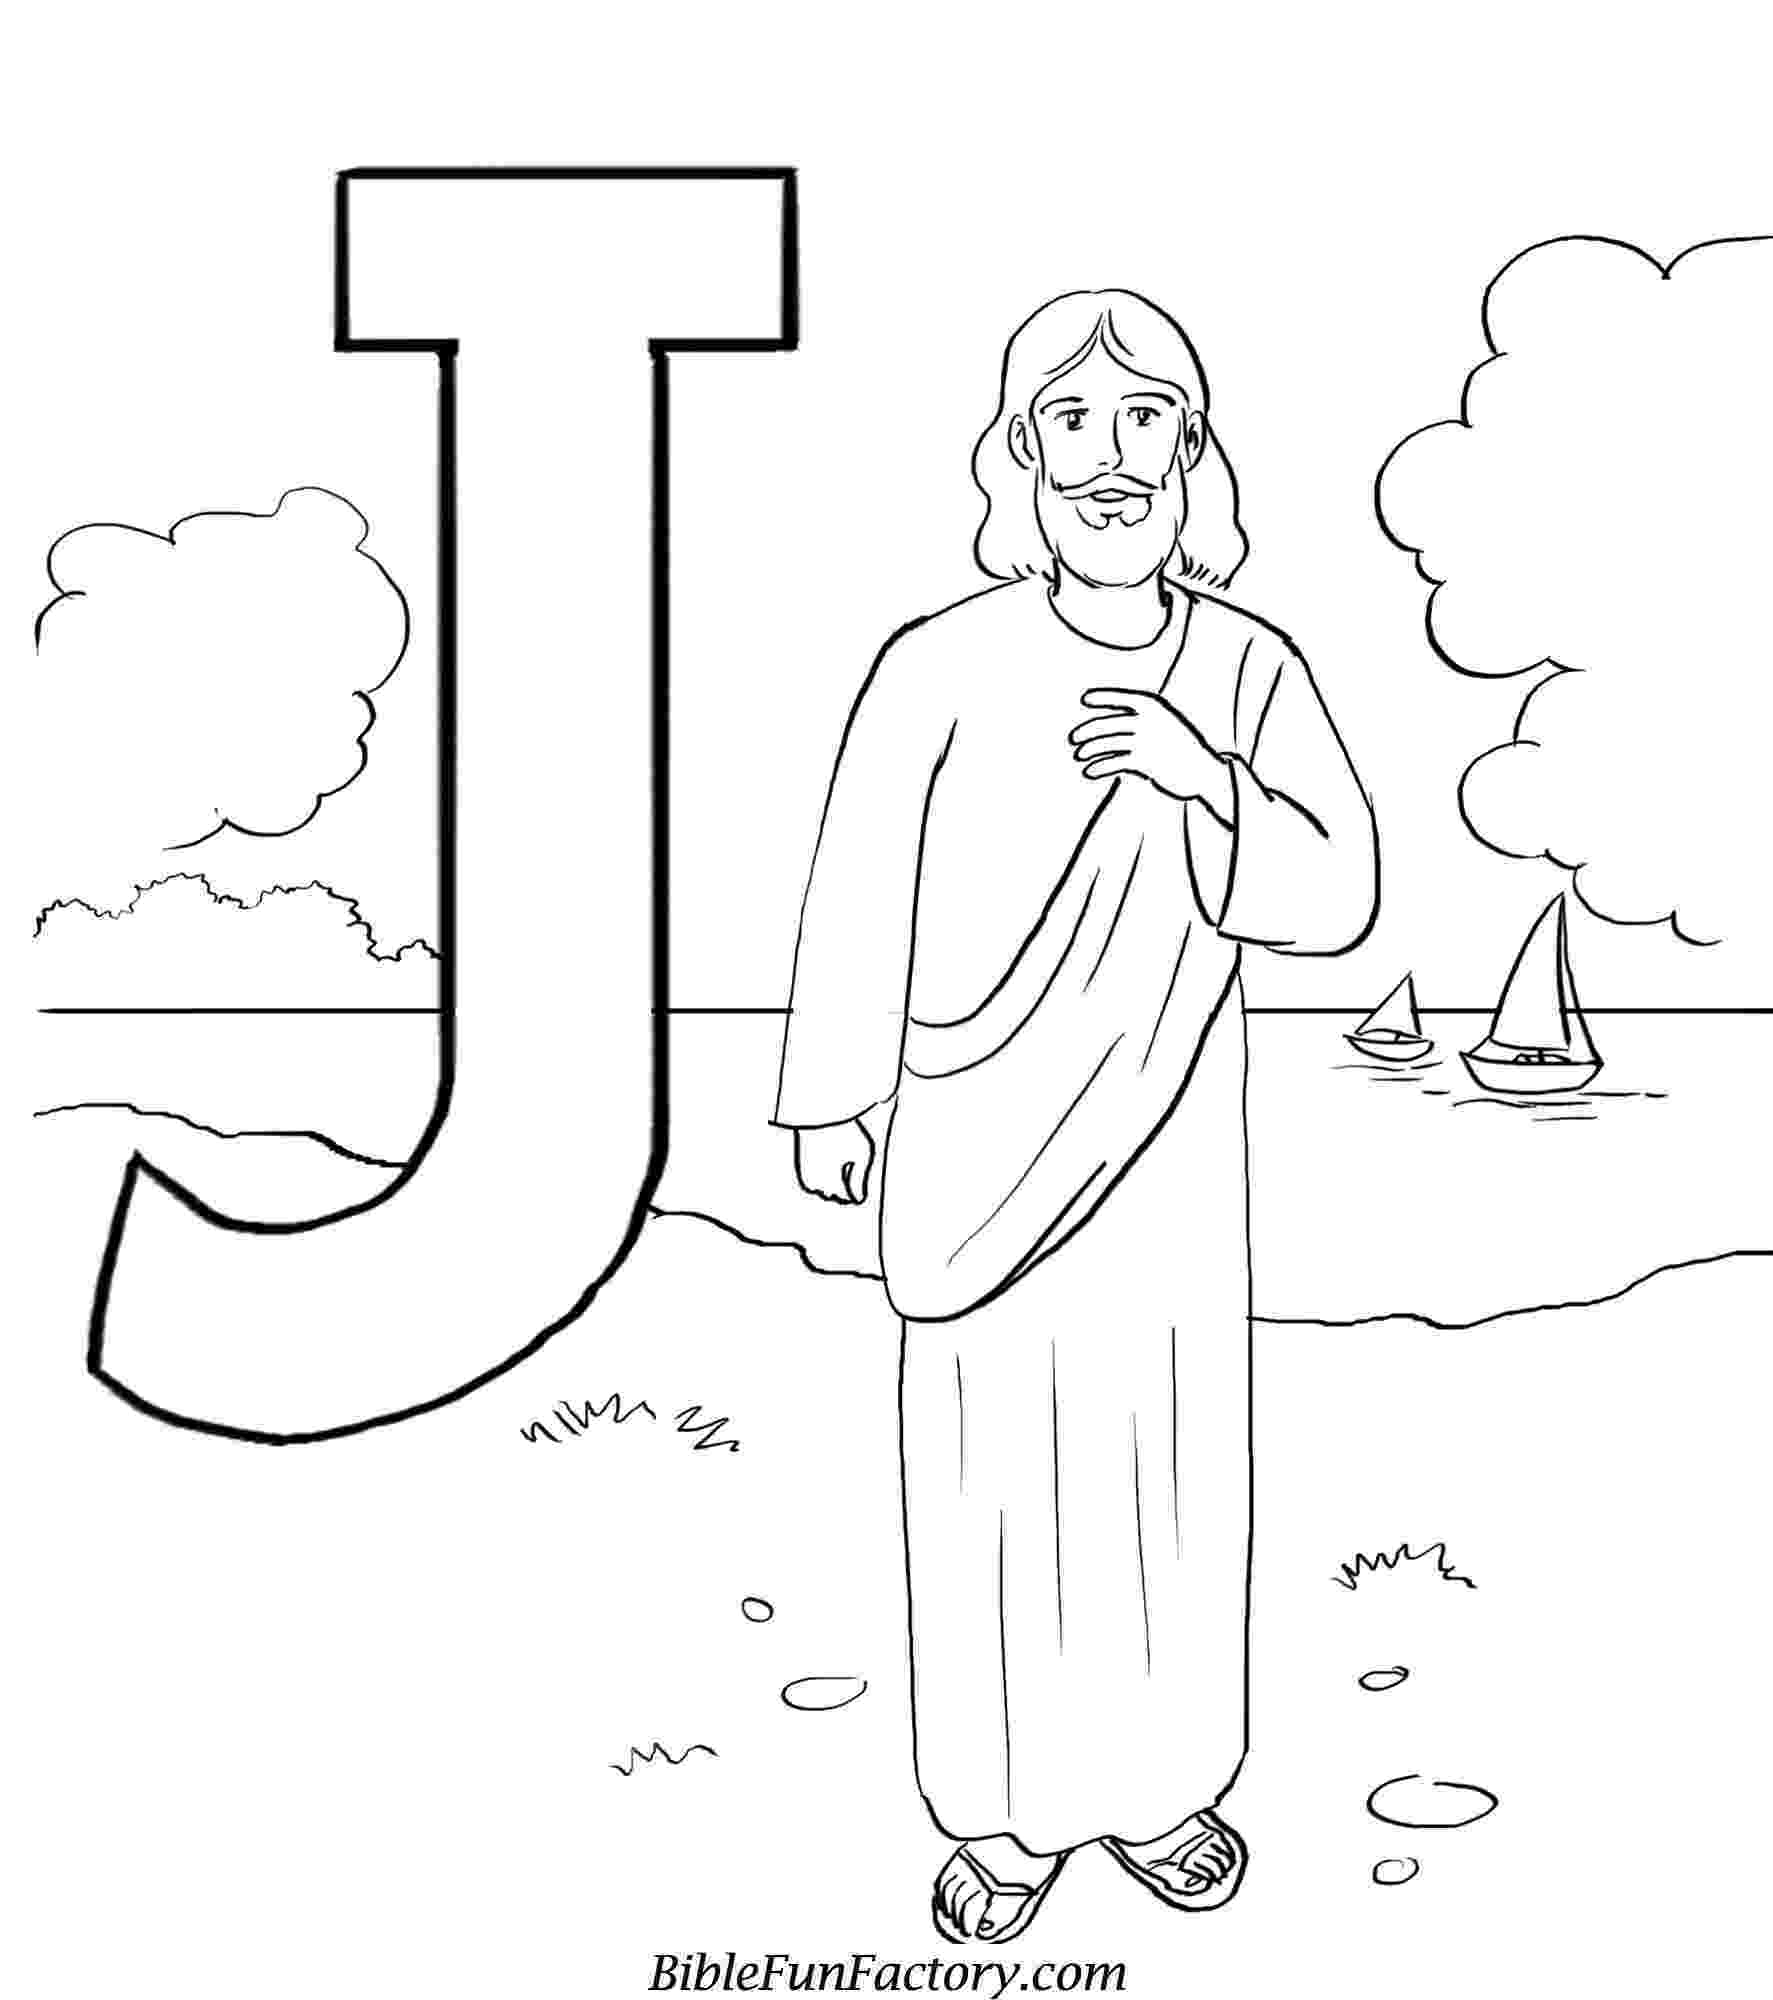 coloring pages jesus free jesus coloring pages bible lessons games and pages jesus coloring